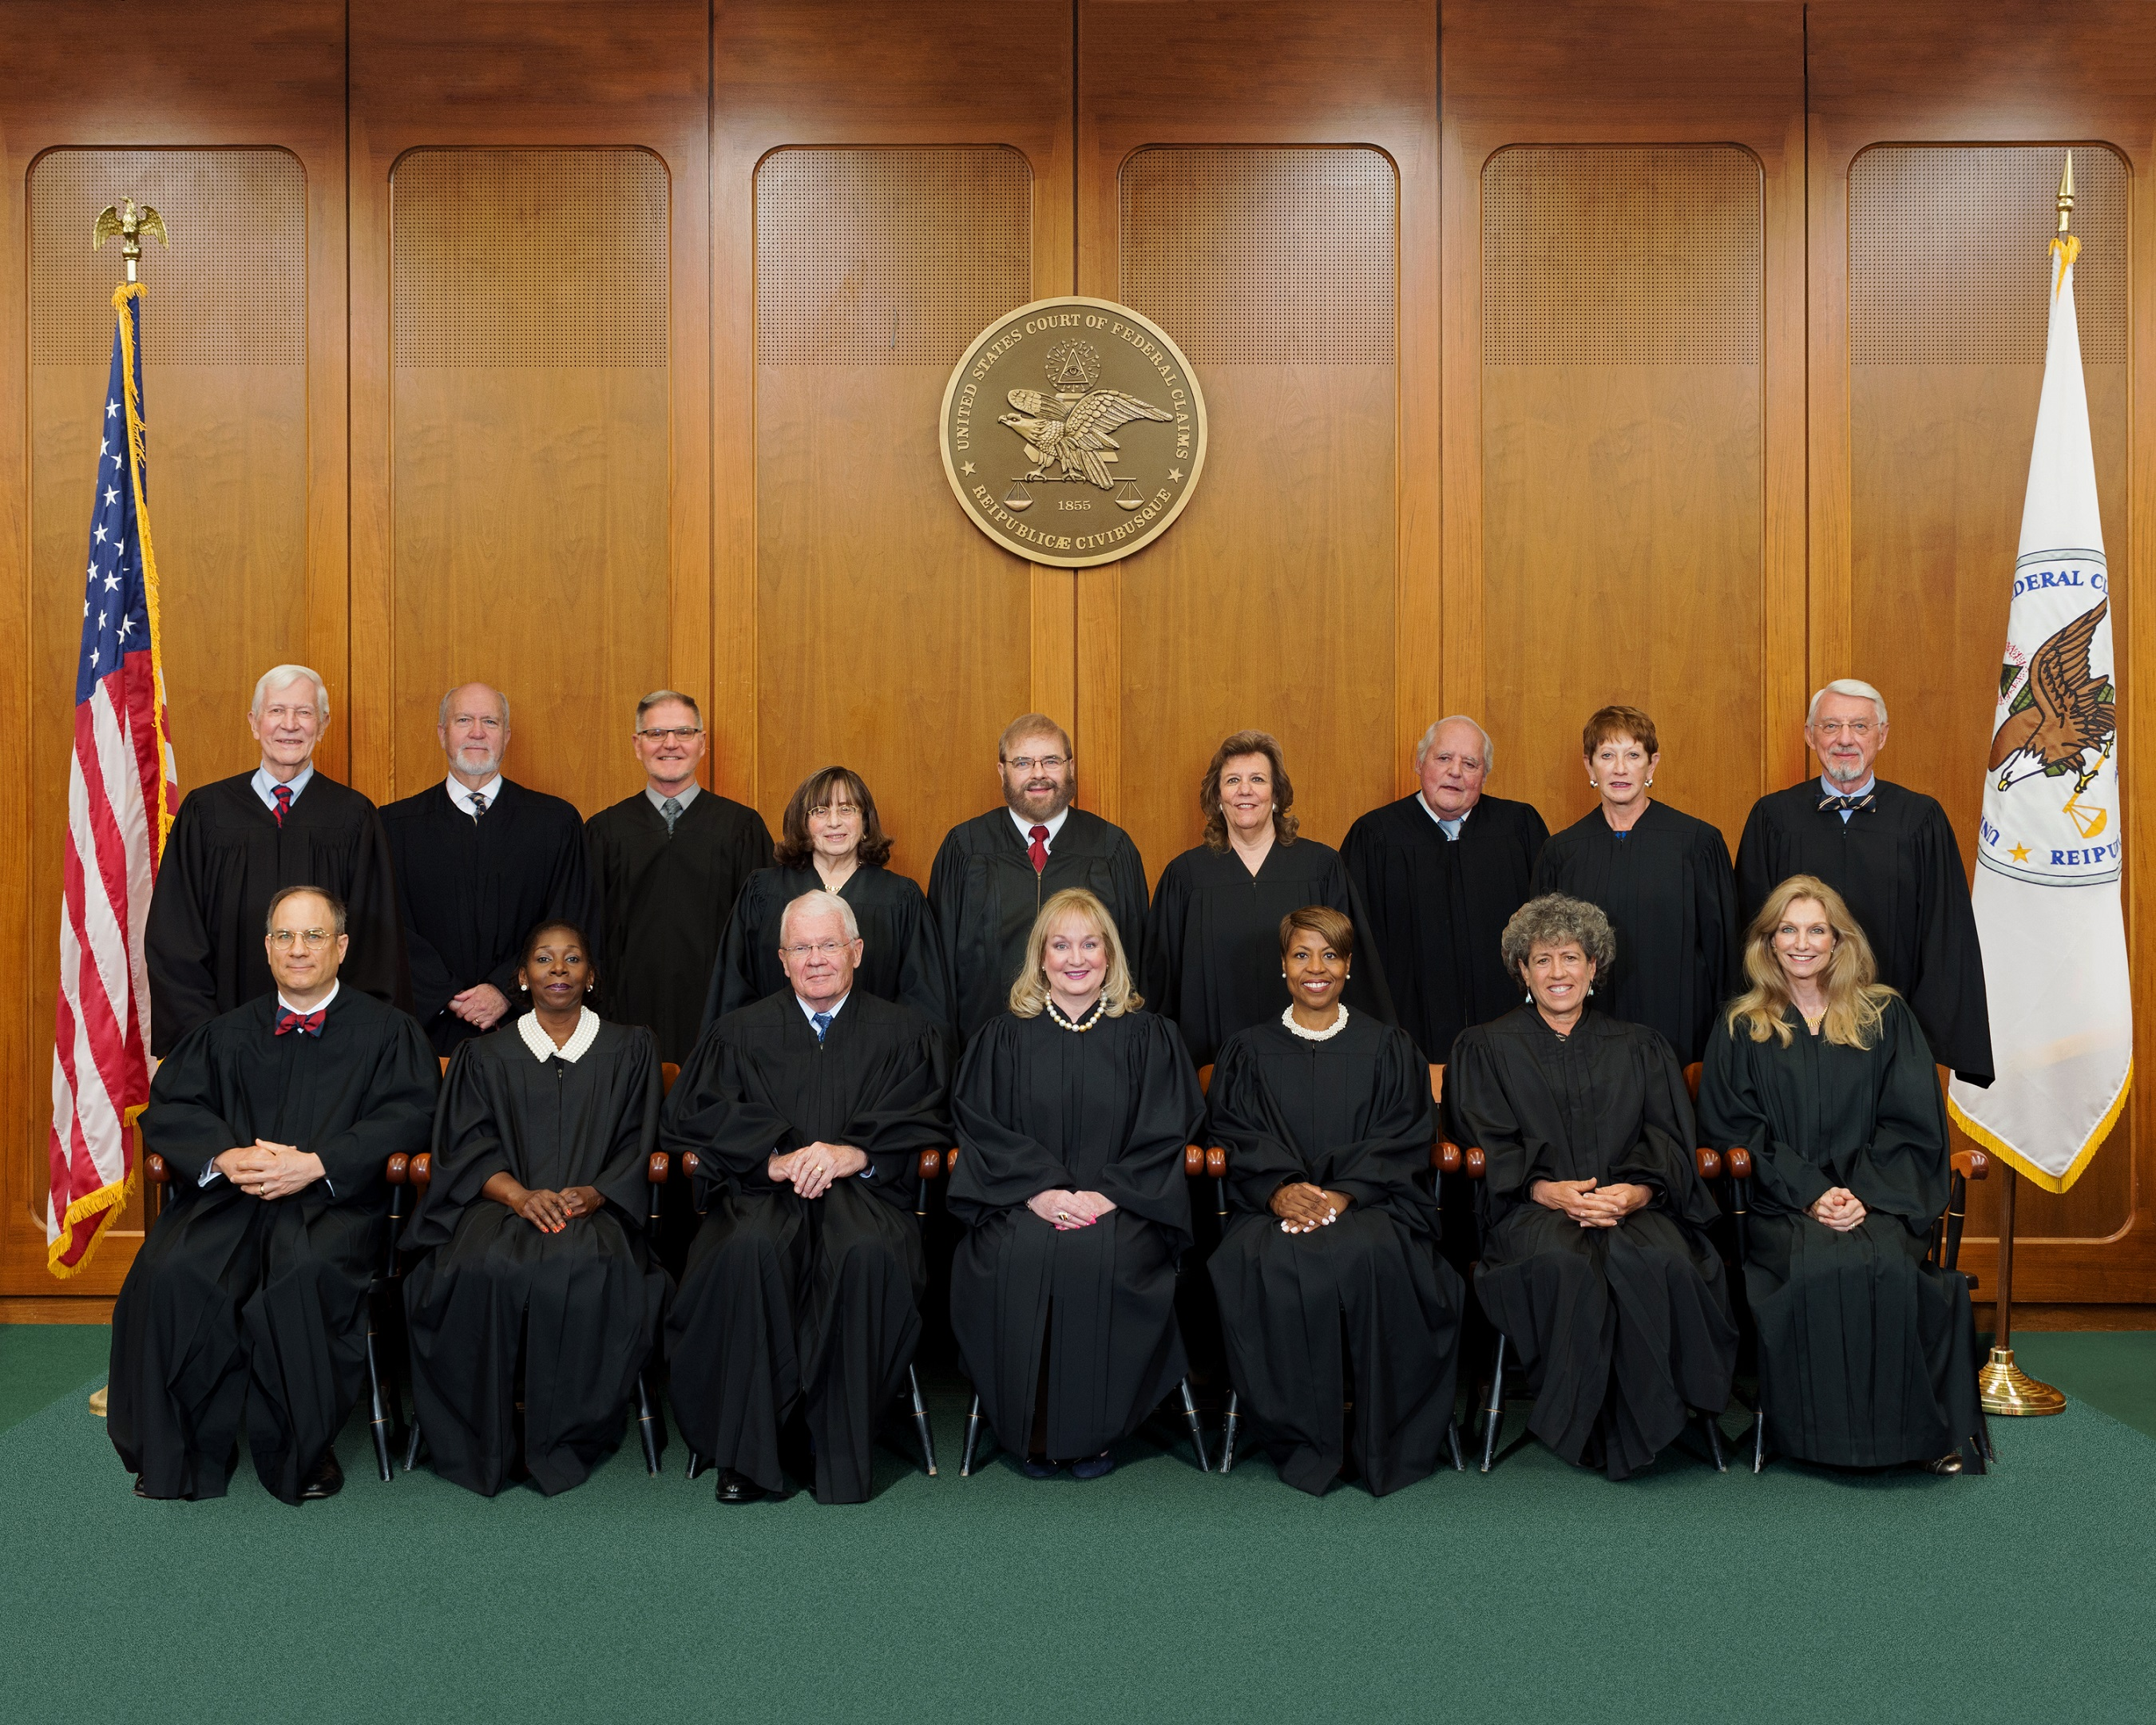 Judges of the United States Court of Federal Claims - 2018